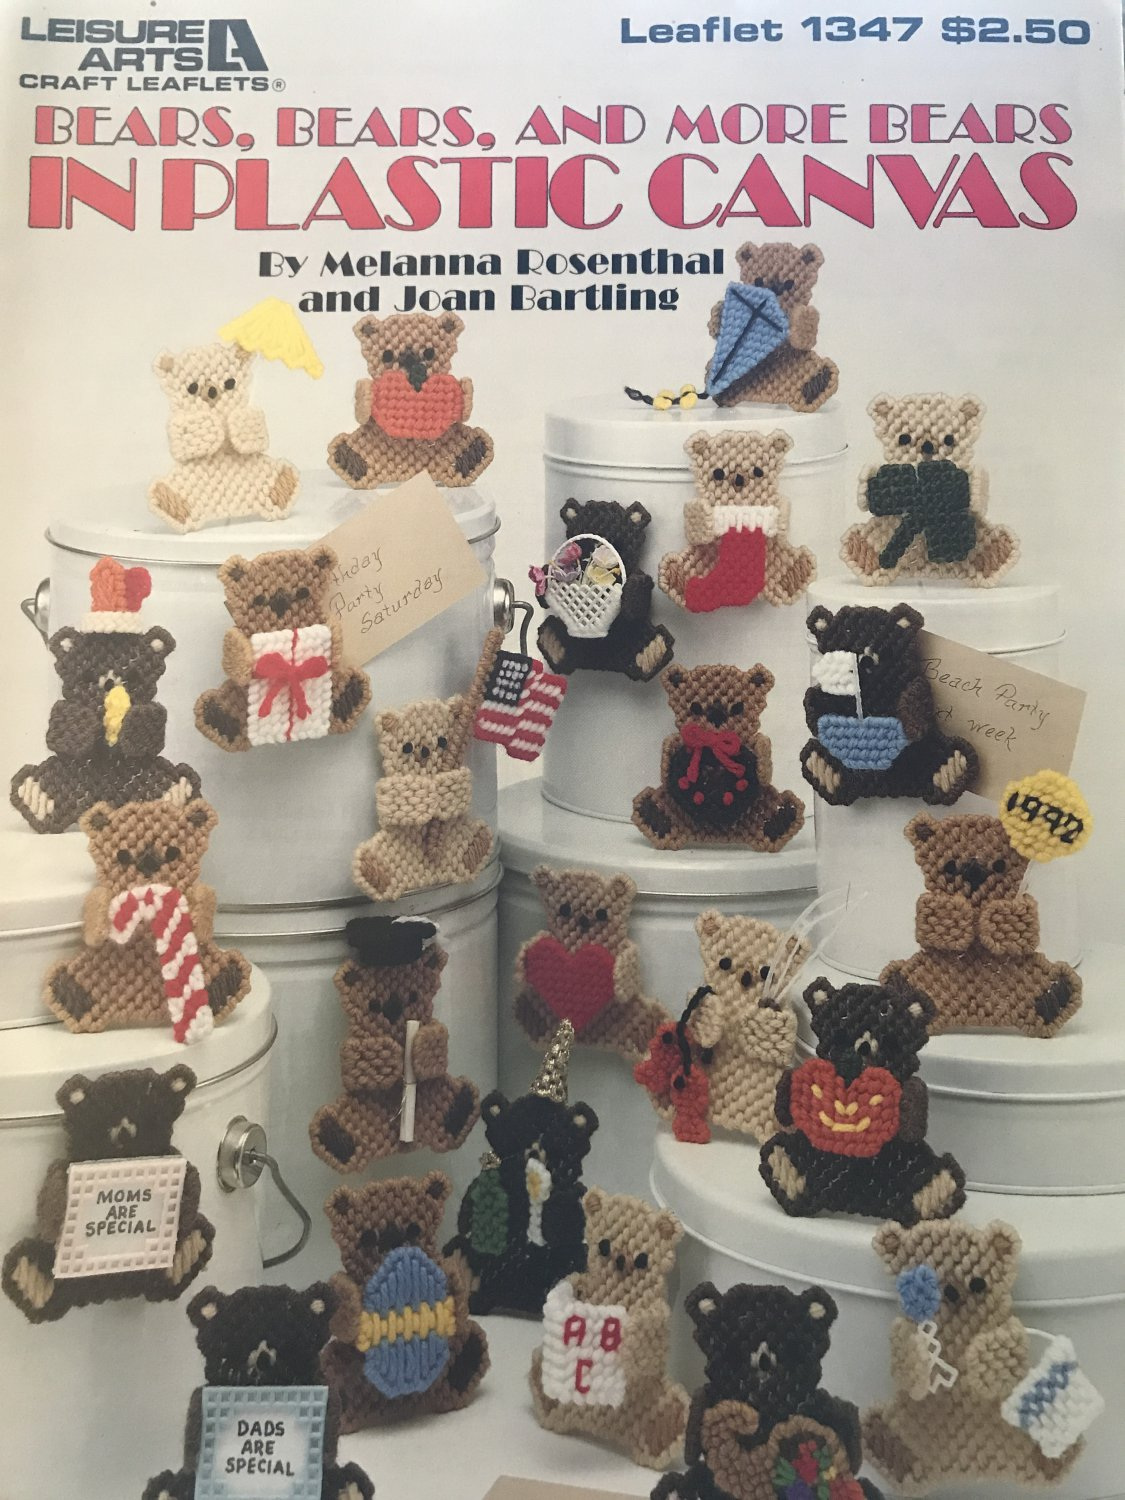 Bears, Bears and More Bears in Plastic Canvas Leisure Arts Leaflet 1347